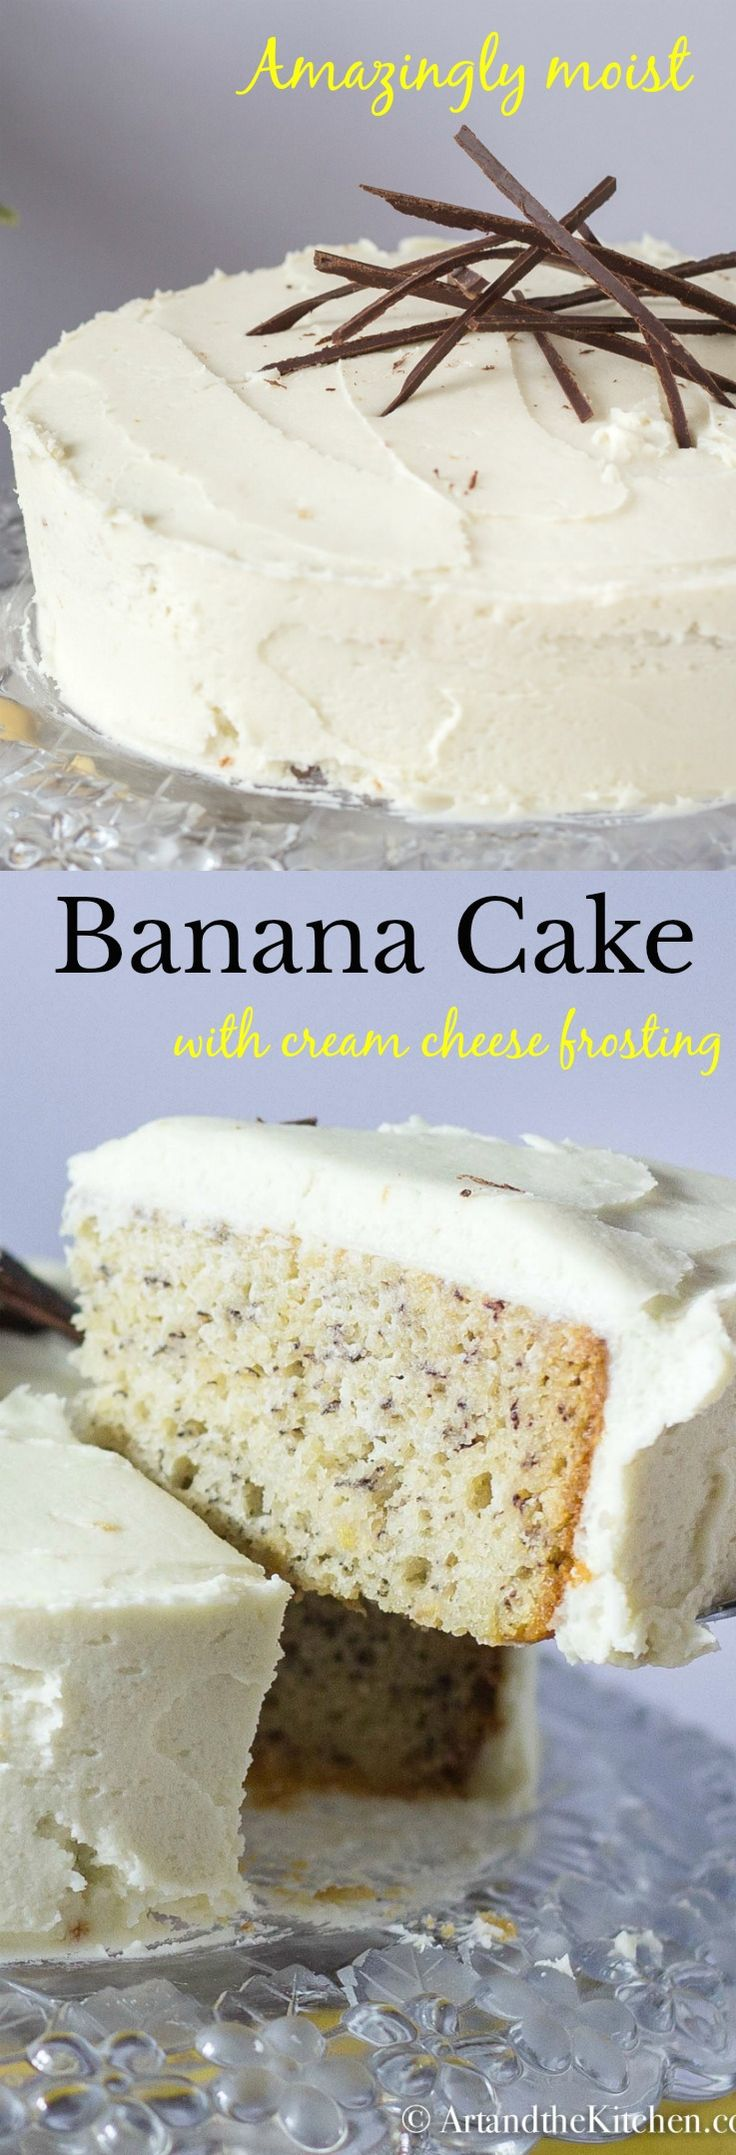 My All Time favourite recipe for Moist Banana Cake with Cream Cheese frosting. Ultra moist, flavourful and once you try it you will agree it is the best banana cake you have ever ate! #bananacake